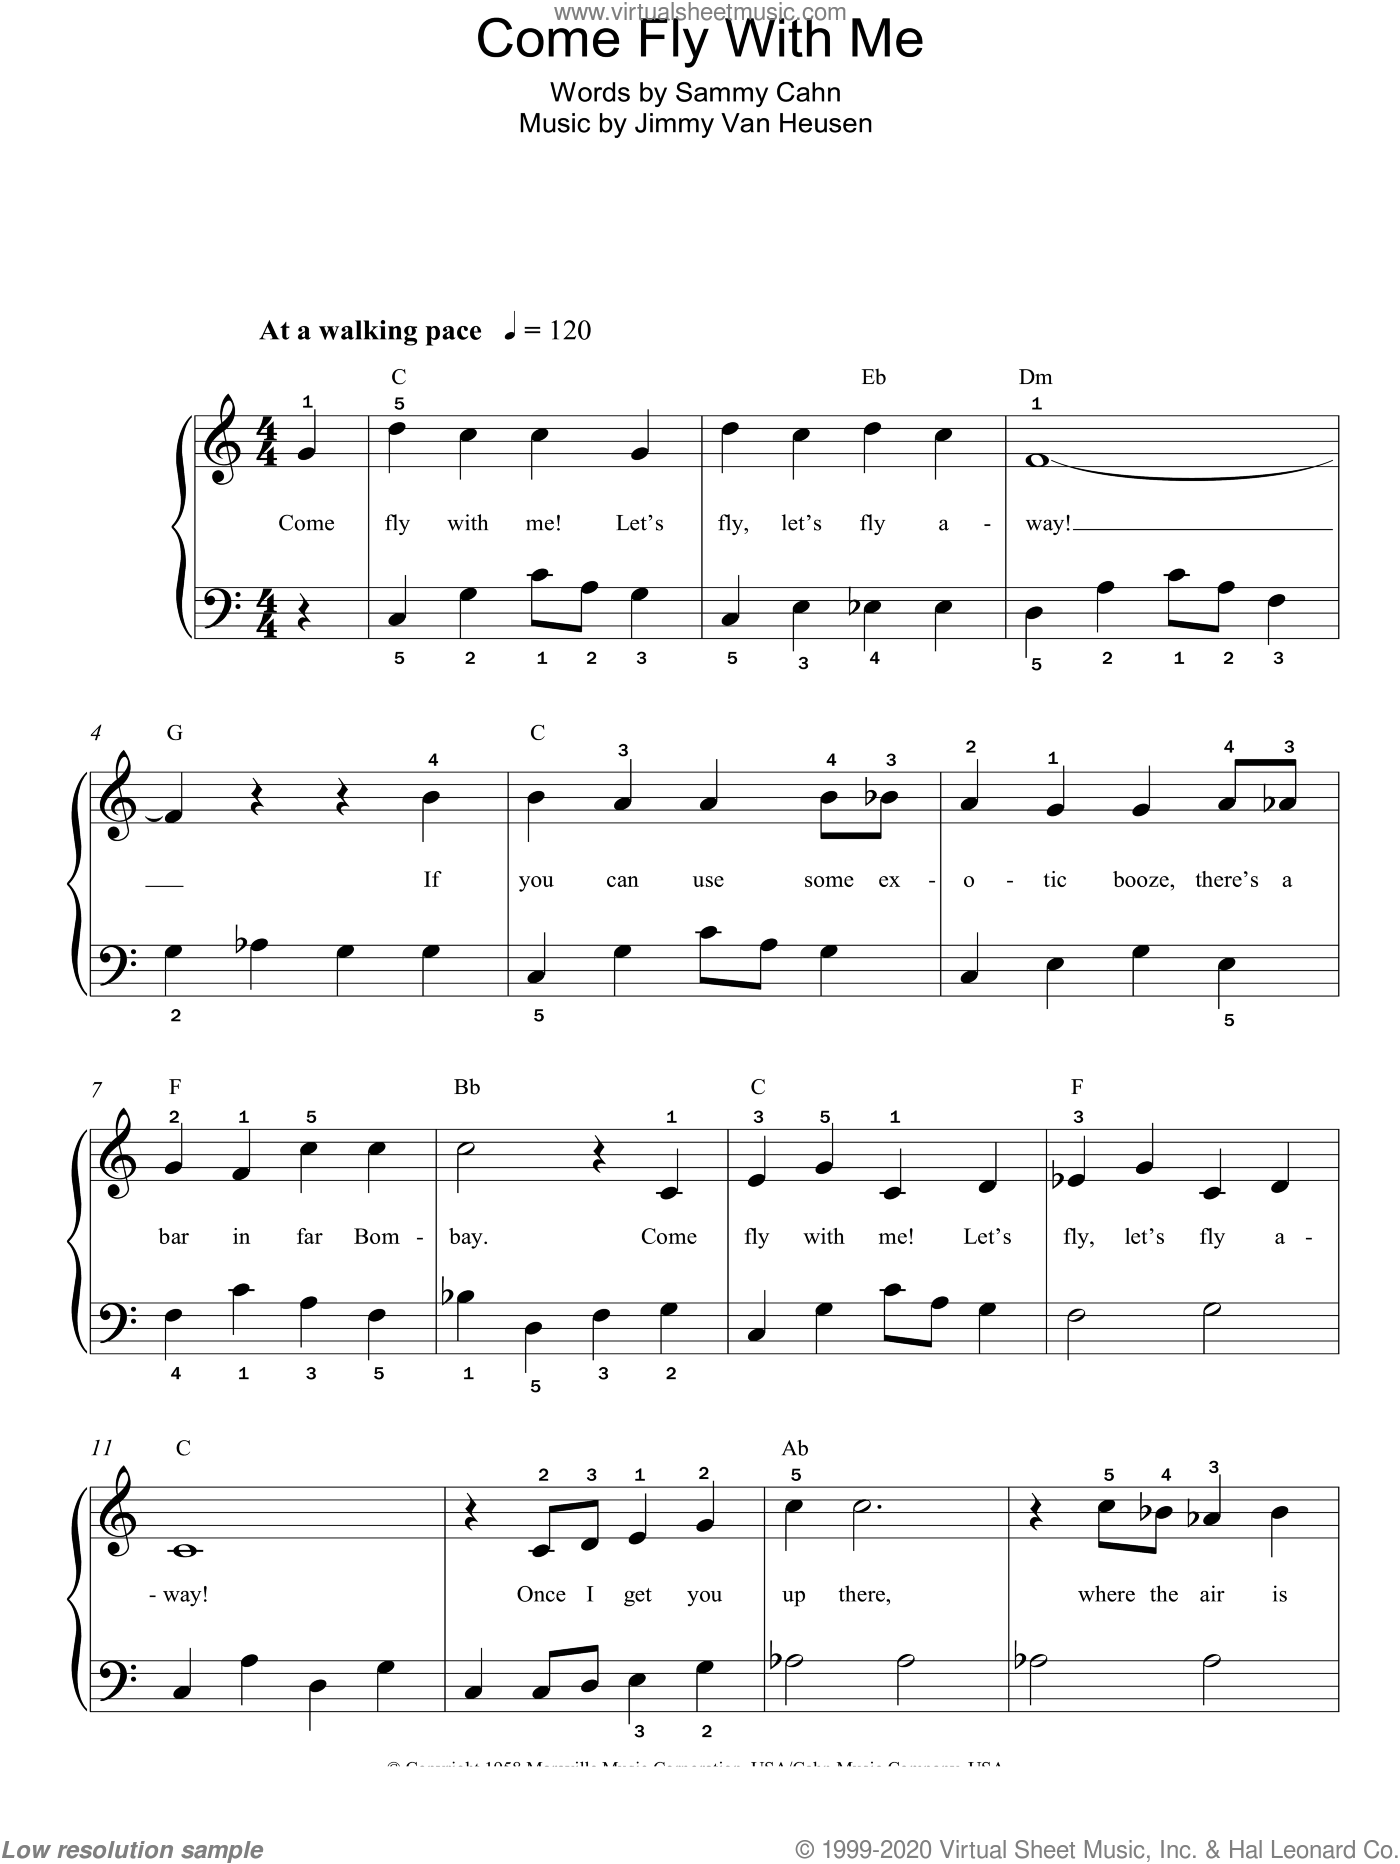 Come Fly With Me sheet music for piano solo by Jimmy Van Heusen, Frank Sinatra and Sammy Cahn. Score Image Preview.